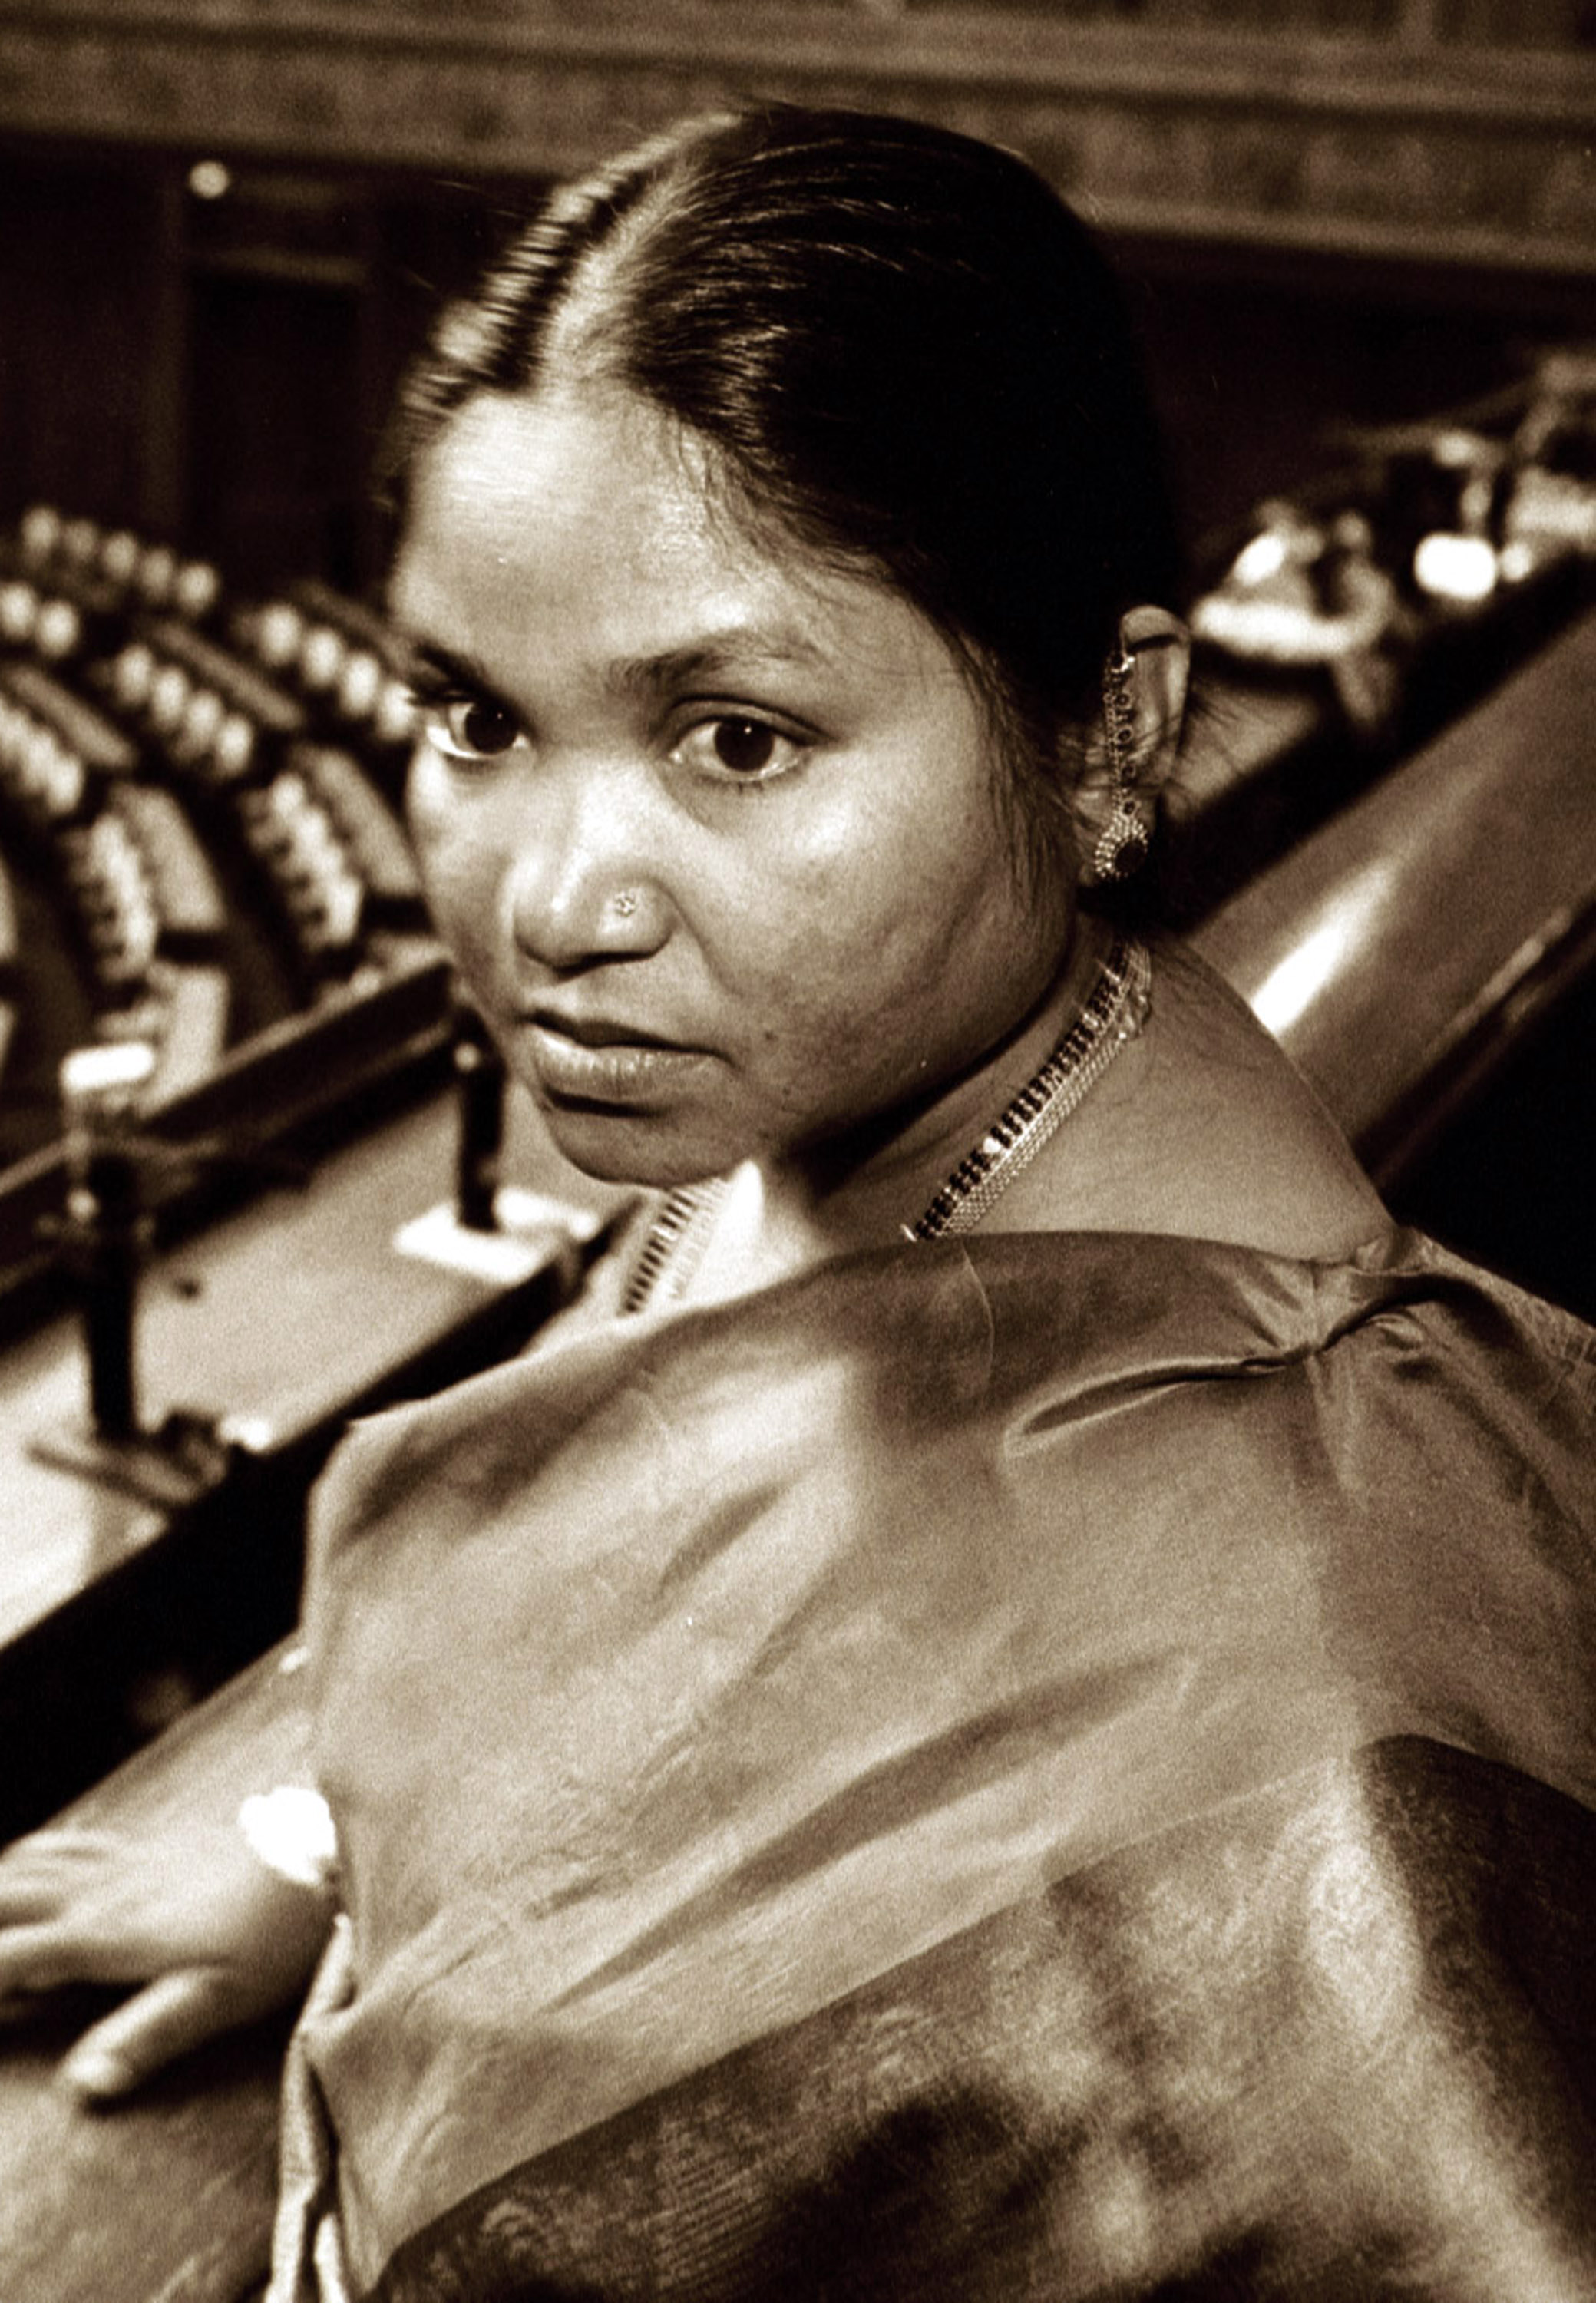 <strong>Phoolan Devi, India</strong> Phoolan Devi began a streak of violent robberies across northern and central India, targeting upper castes. In 1981 she led her gang of bandits to massacre more than 20 men in the high-caste village where her former lover was killed. Devi negotiated her sentence with the Indian government to 11 years in jail.